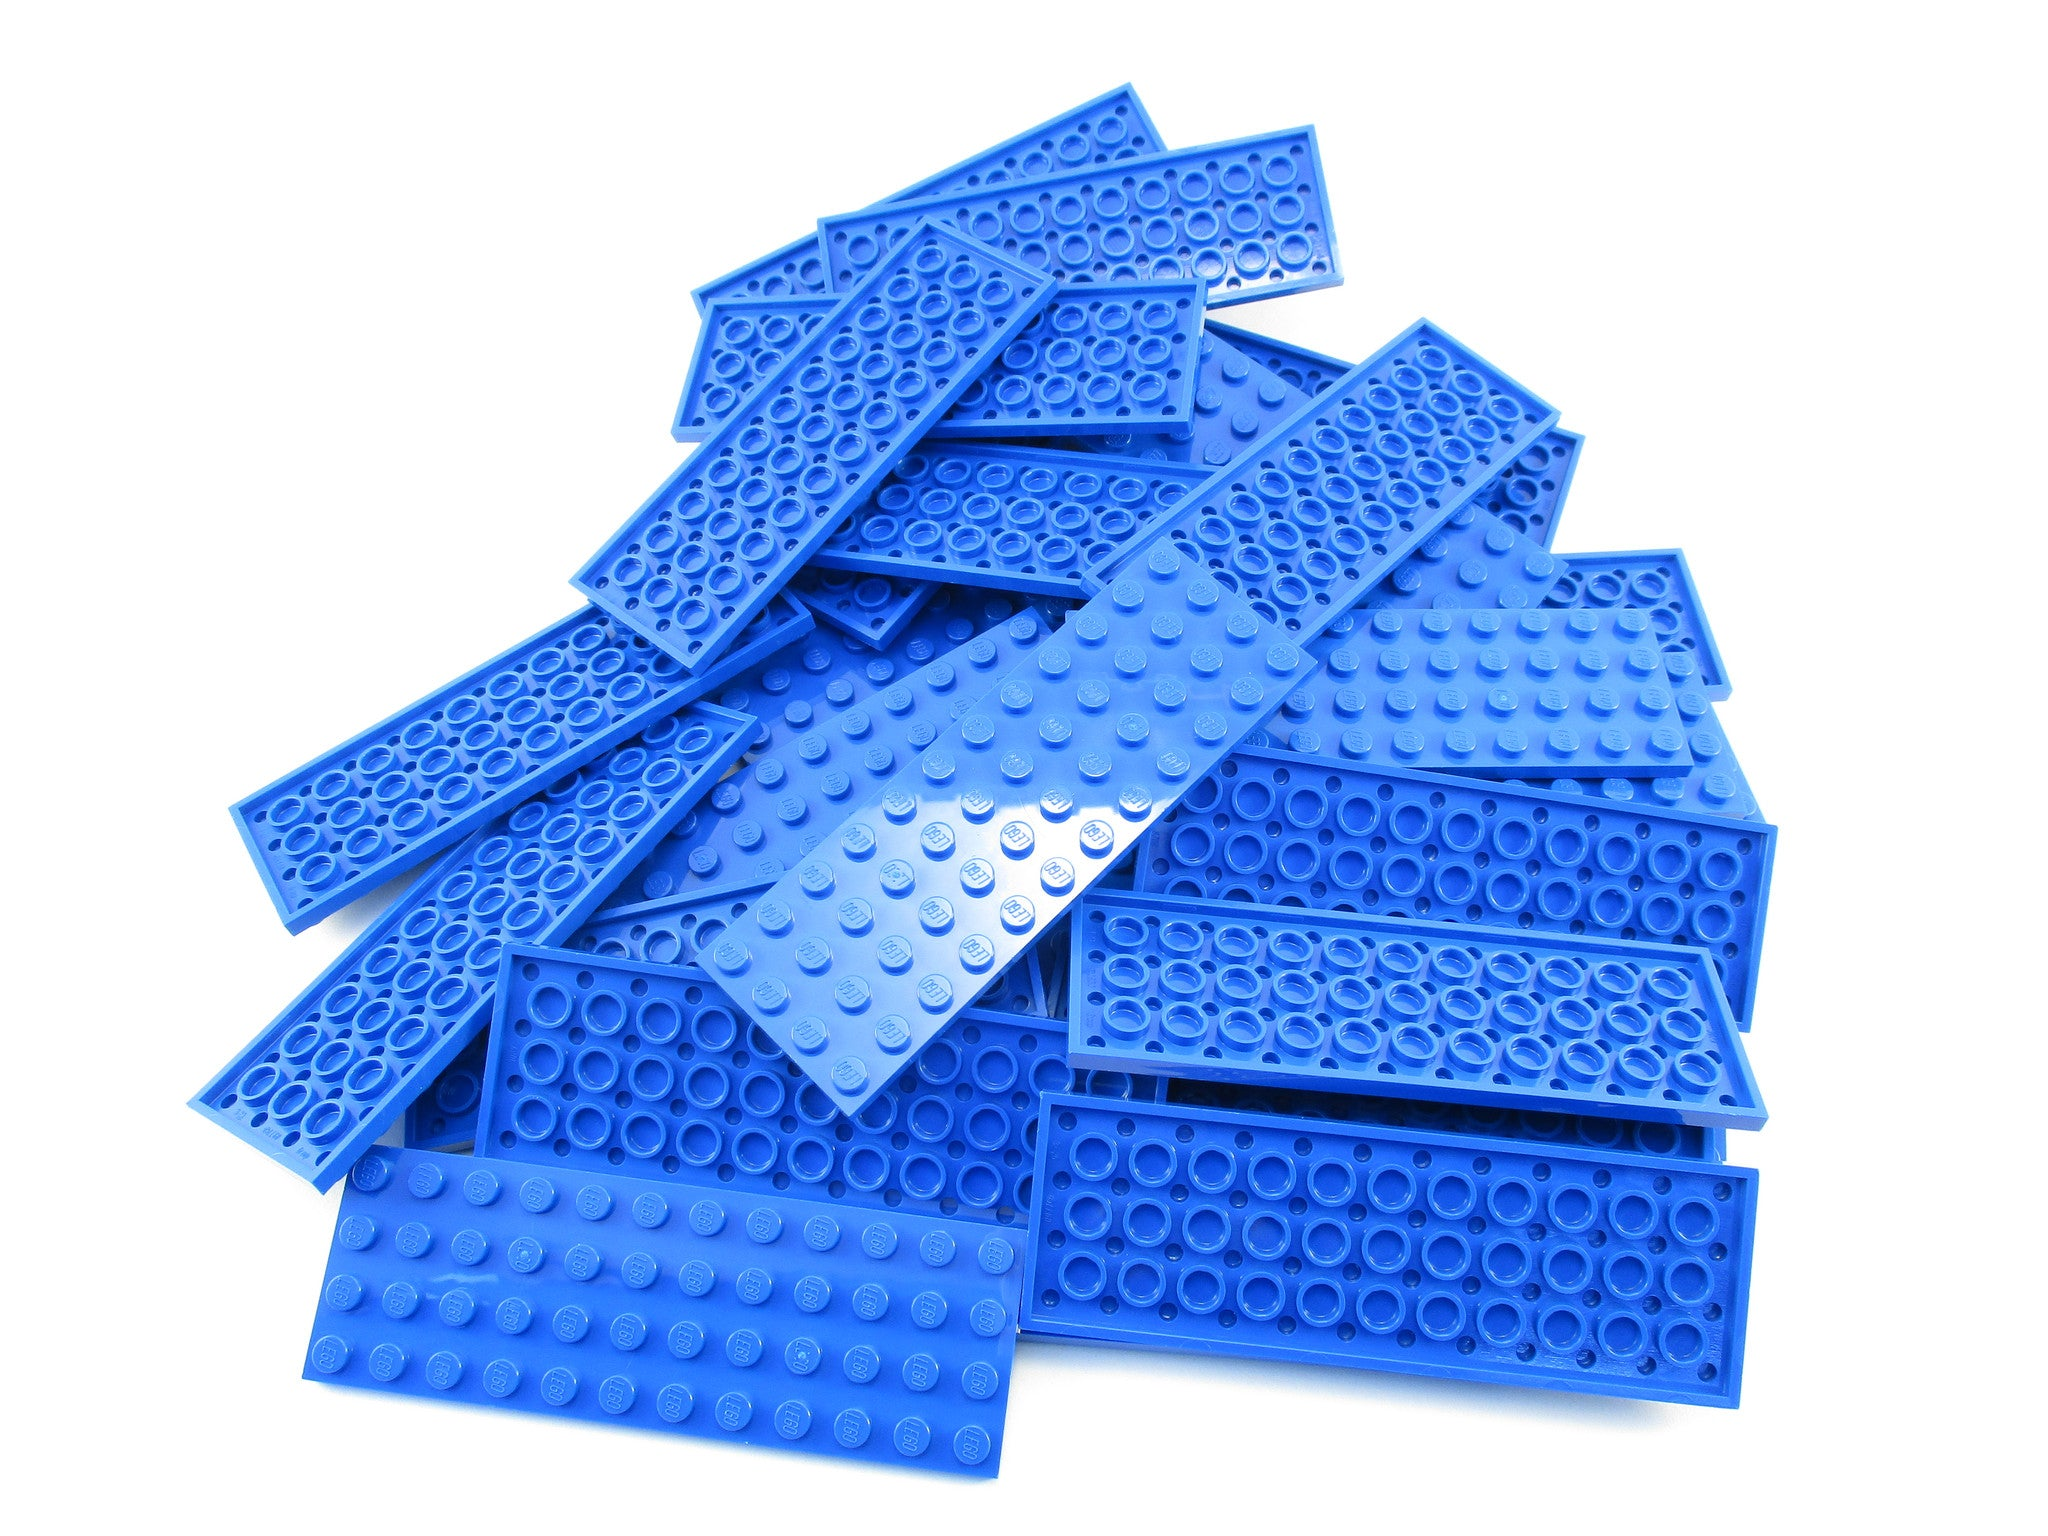 LEGO Blue Plate 4x12 Lot of 25 Parts Pieces 3029